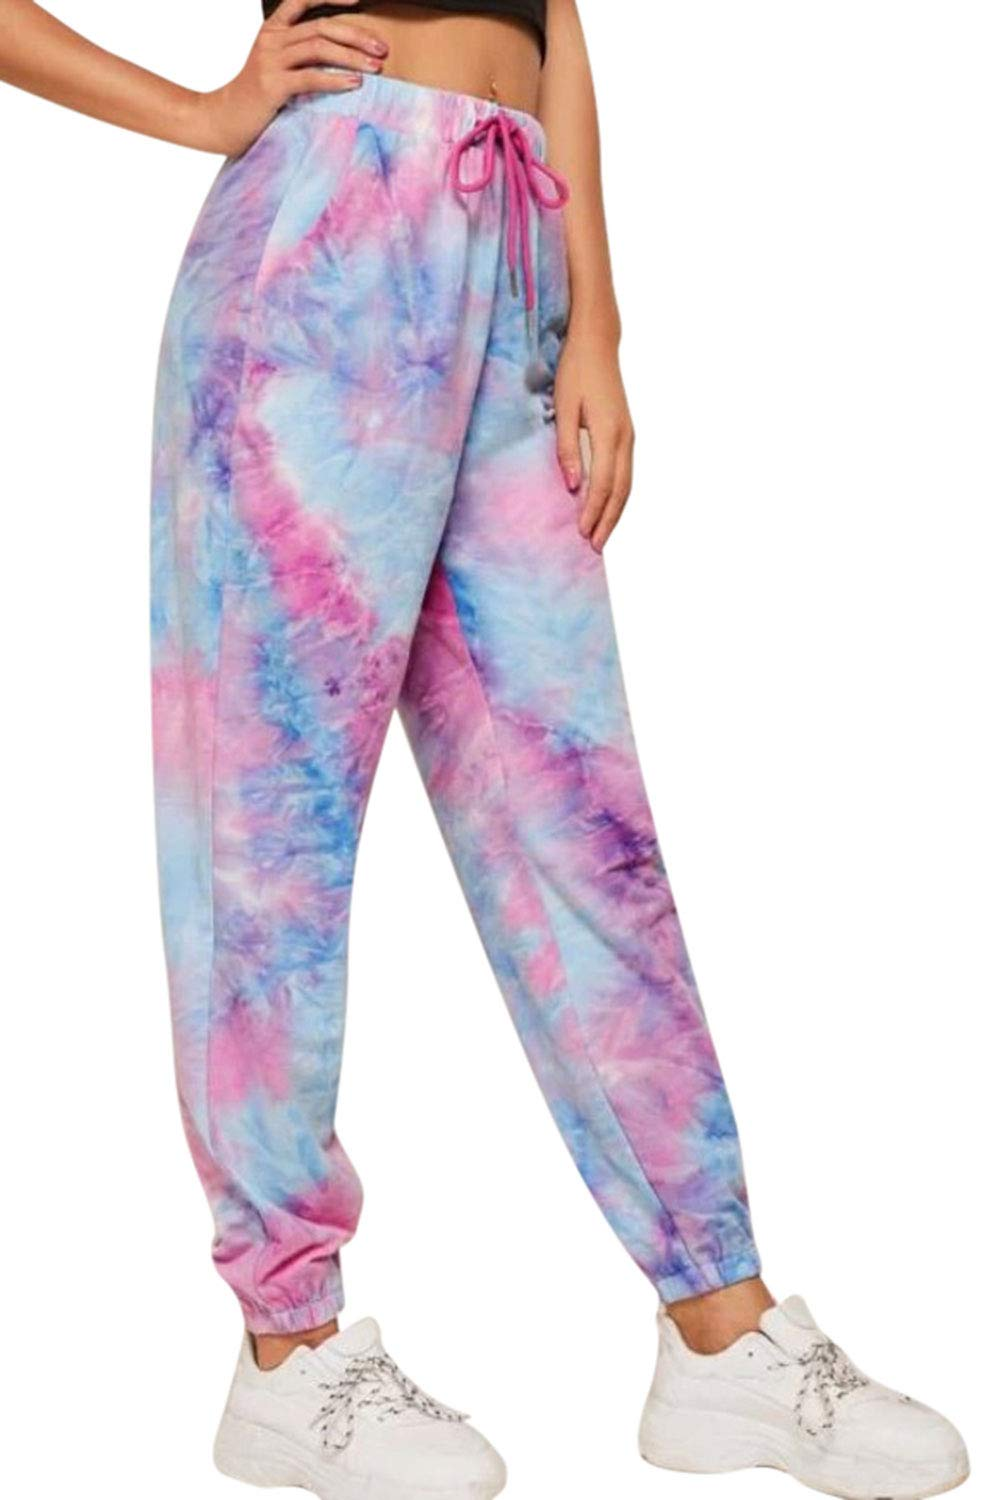 Pink Queen Women's Tie Dye Lounge Pants Active Workout Drawstring Joggers Sweatpants with Pocket